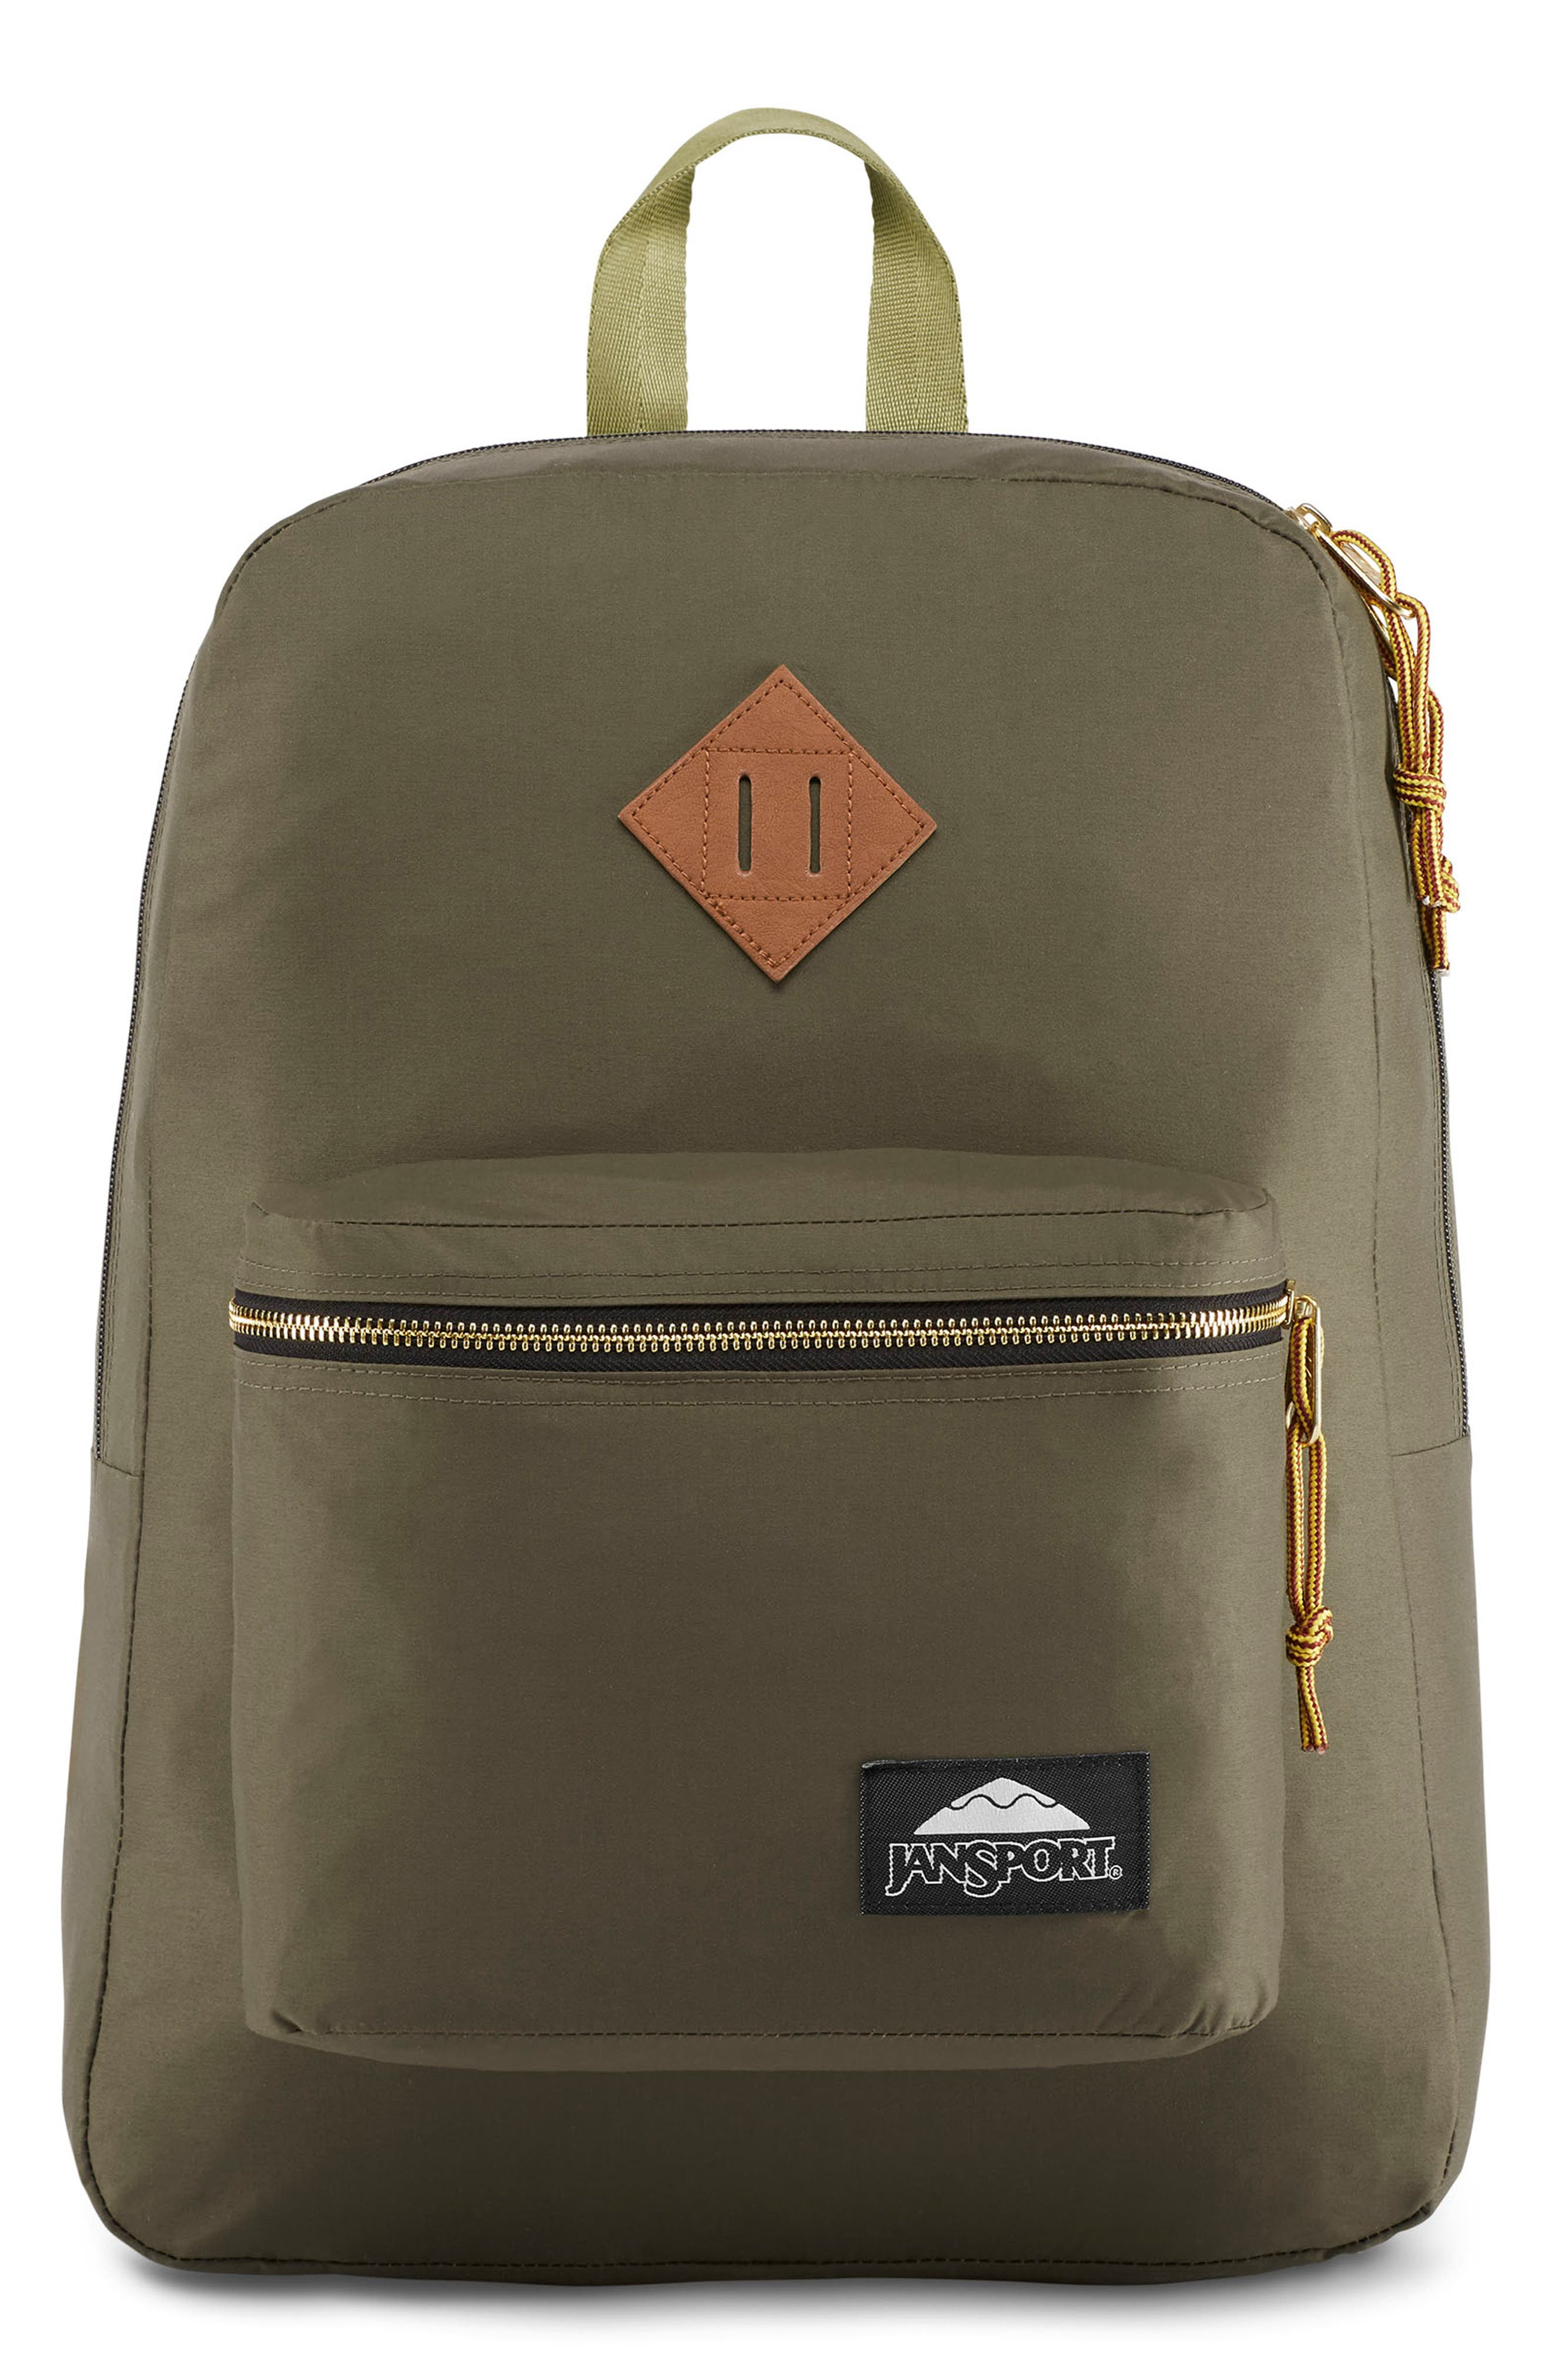 JANSPORT Standard Issue Super Fx Backpack - Green in Alpha Green